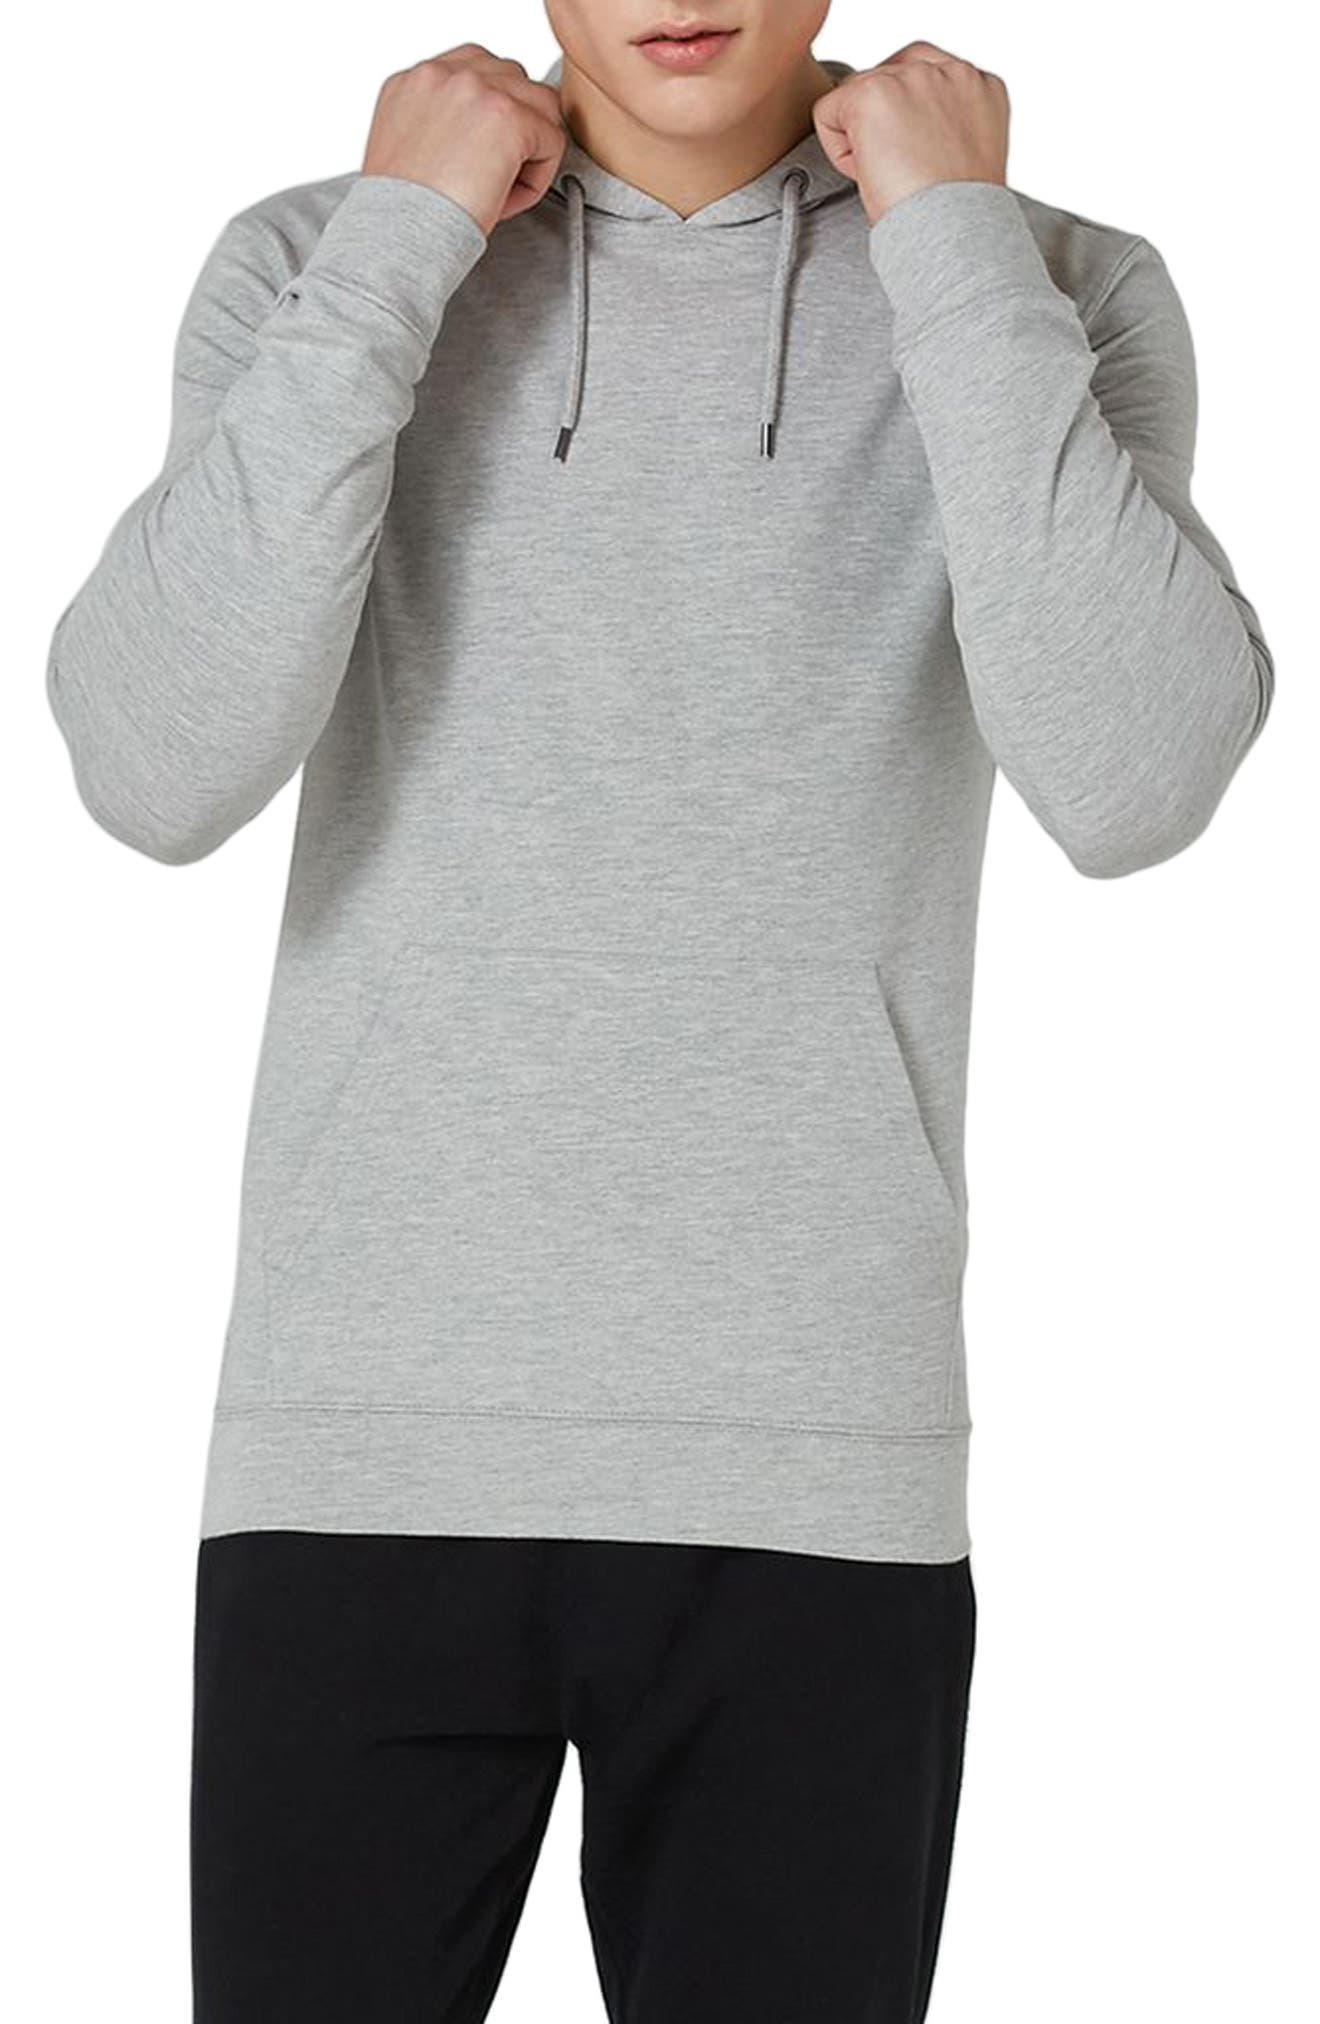 Ultra Muscle Fit Hoodie,                             Main thumbnail 1, color,                             Light Grey